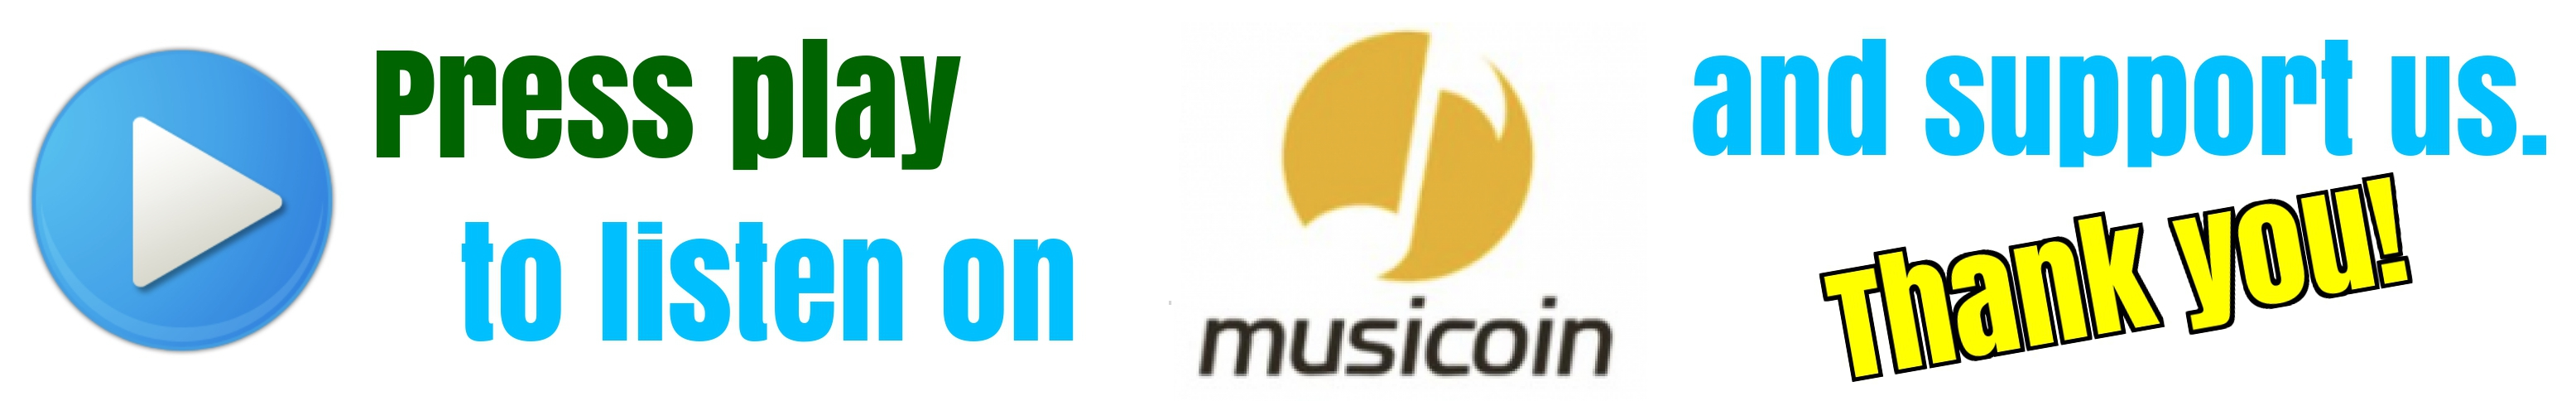 play-on-musicoin.jpg